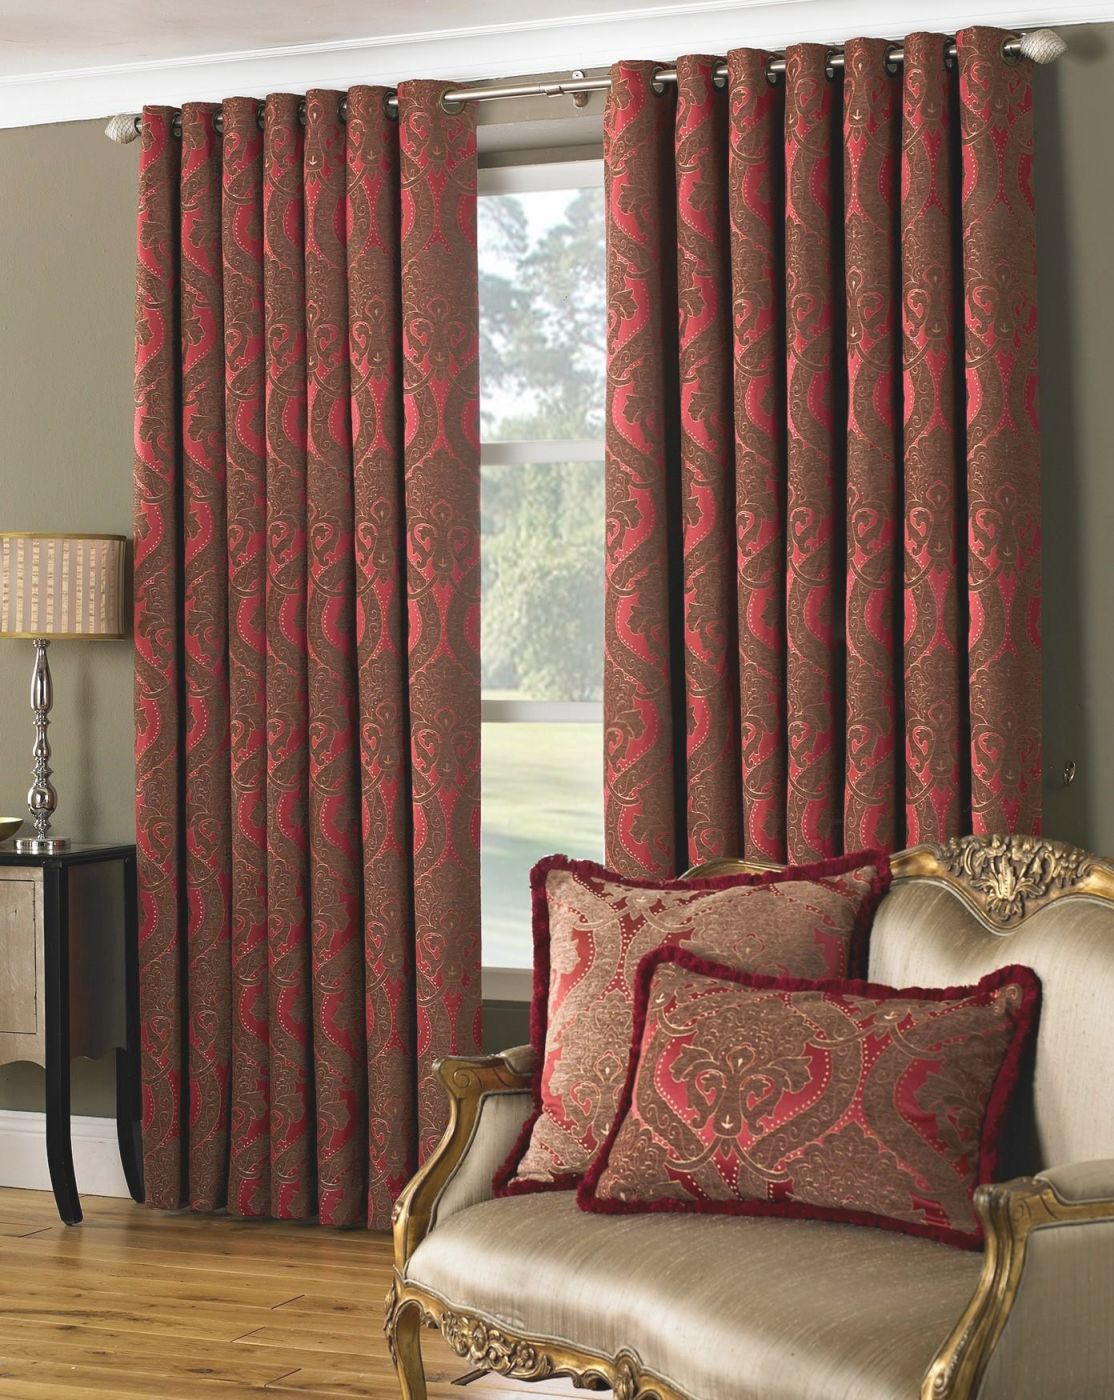 Burgundy Curtains Living Room Roy Home Design – Decoratorist for Burgundy Curtains For Living Room